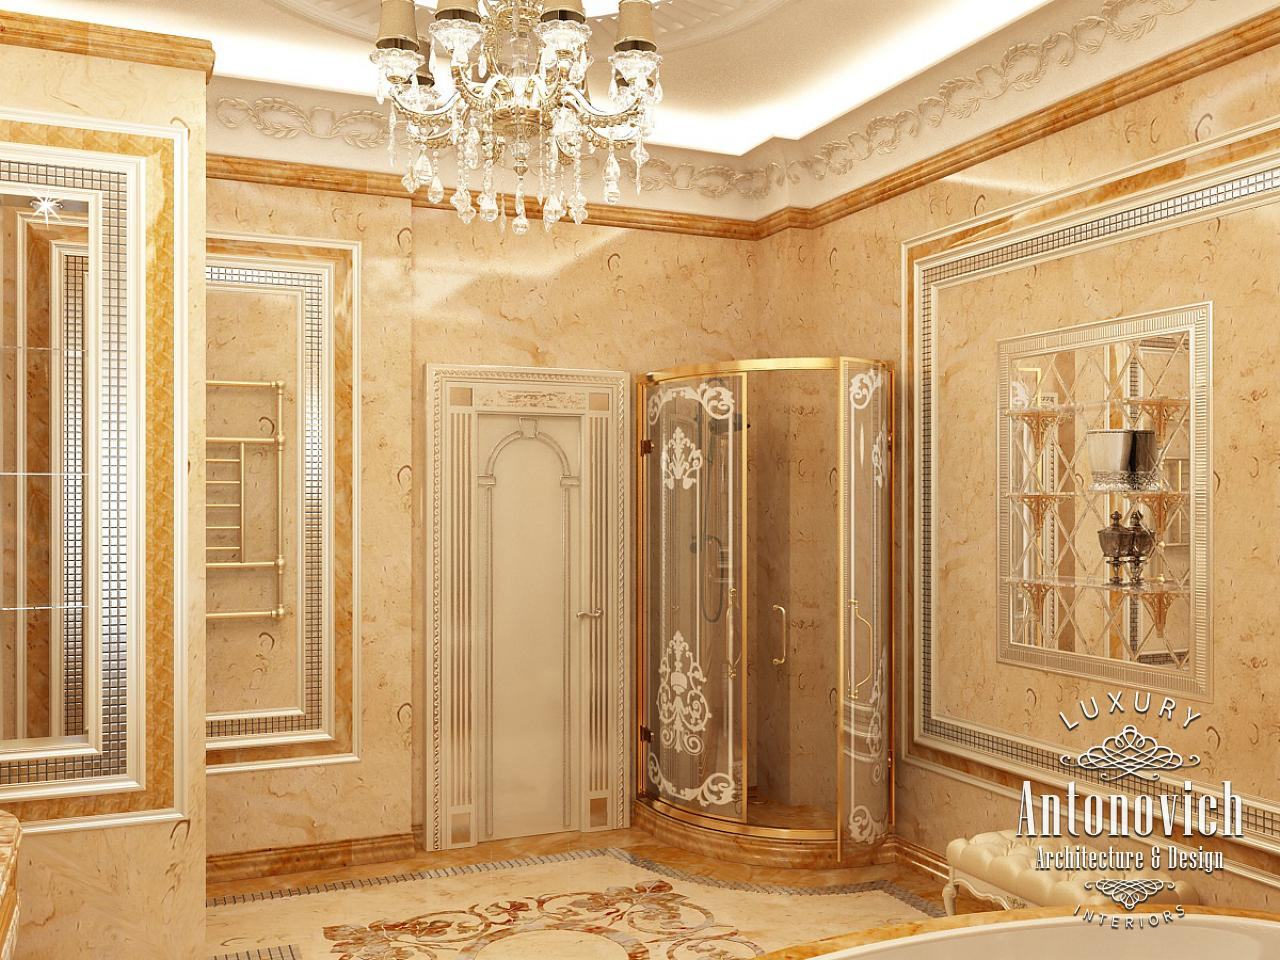 Luxury antonovich design uae bathroom design dubai for Bathroom designs dubai